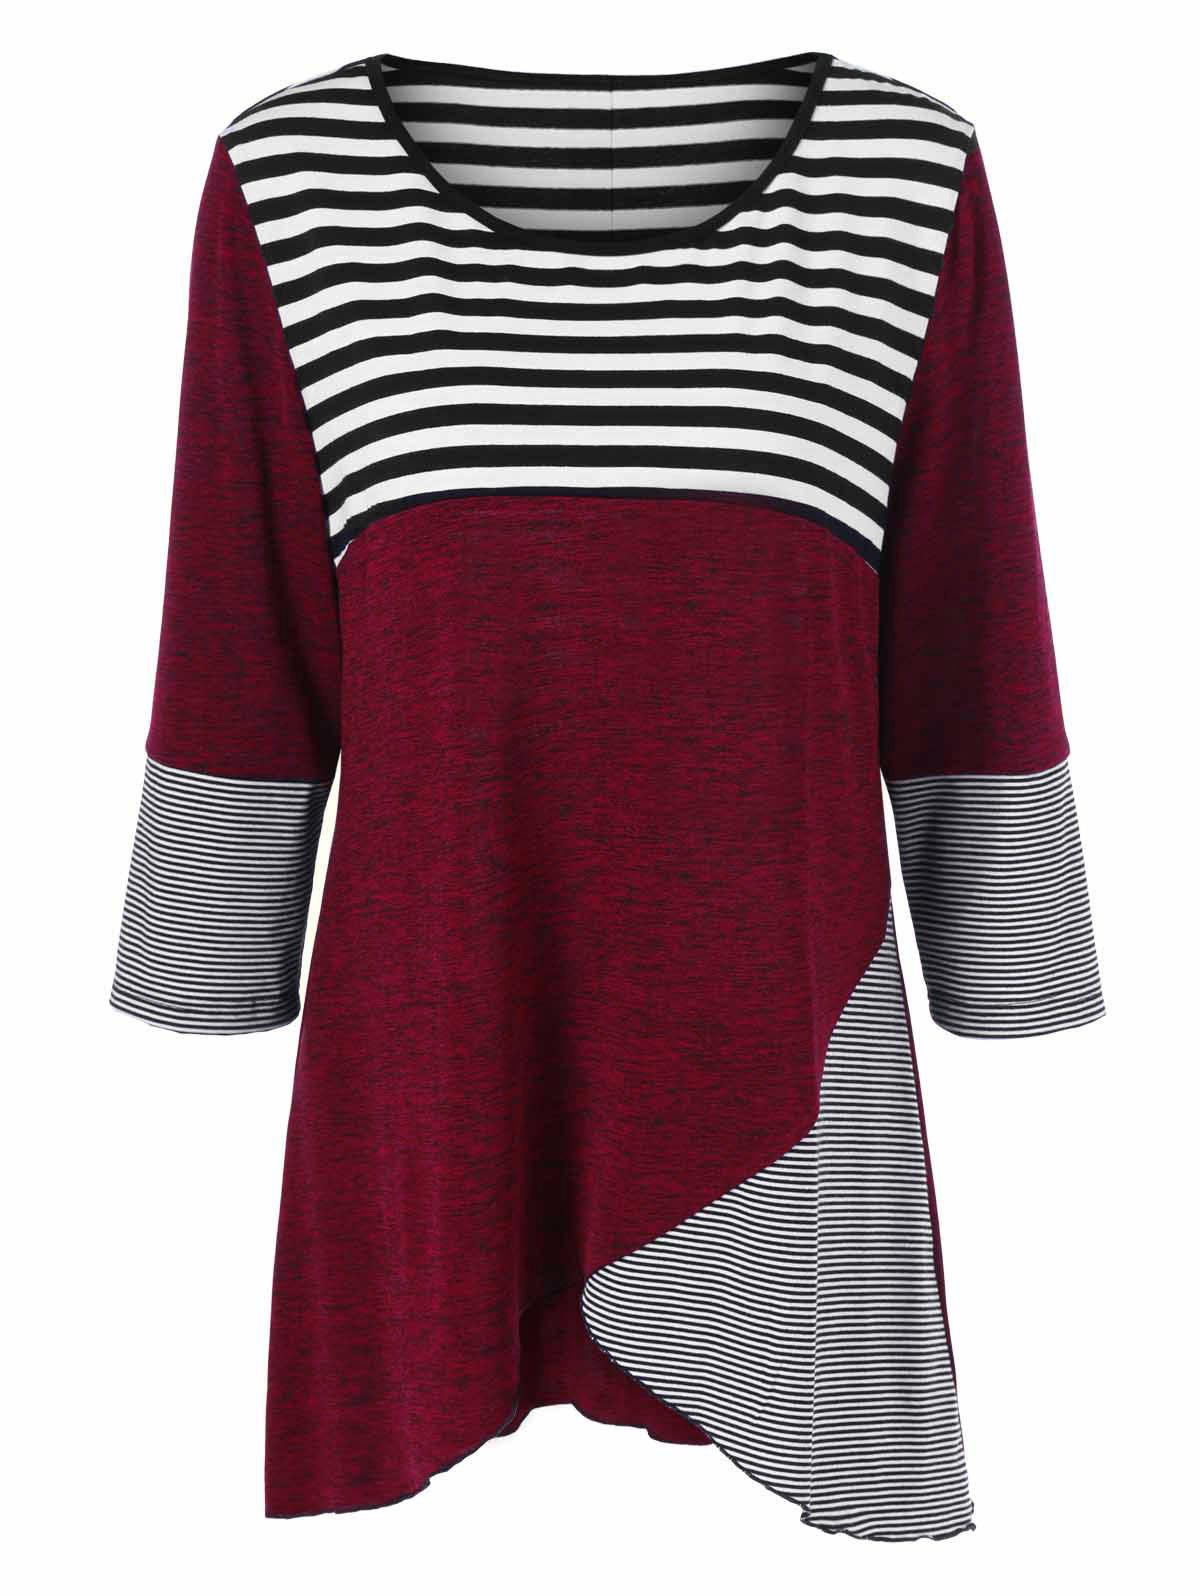 Plus Size Striped Tunic T-Shirt - STRIPE 5XL